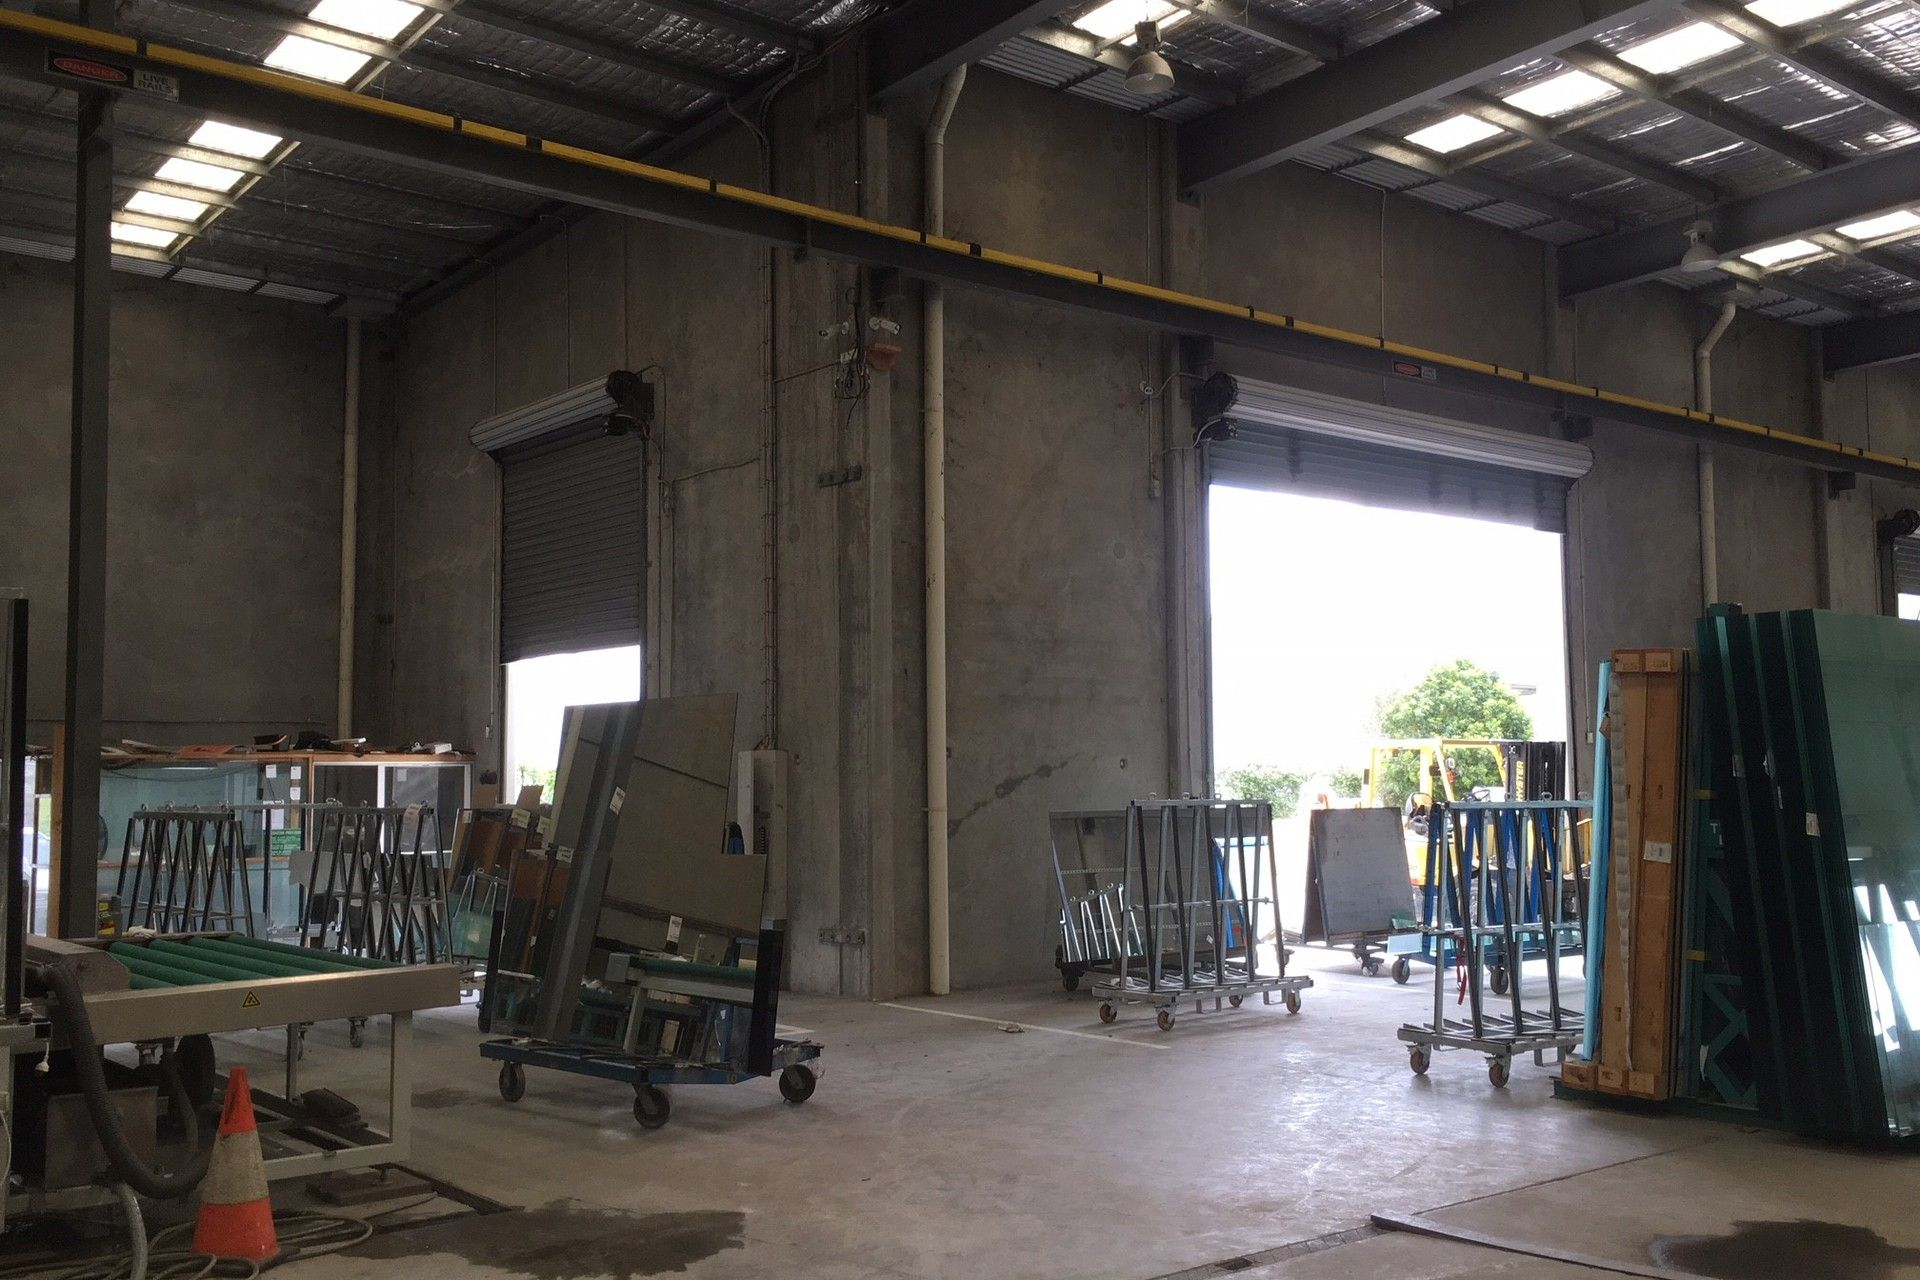 2,699SQM WAREHOUSE WITH DUAL OVERHEAD GANTRY